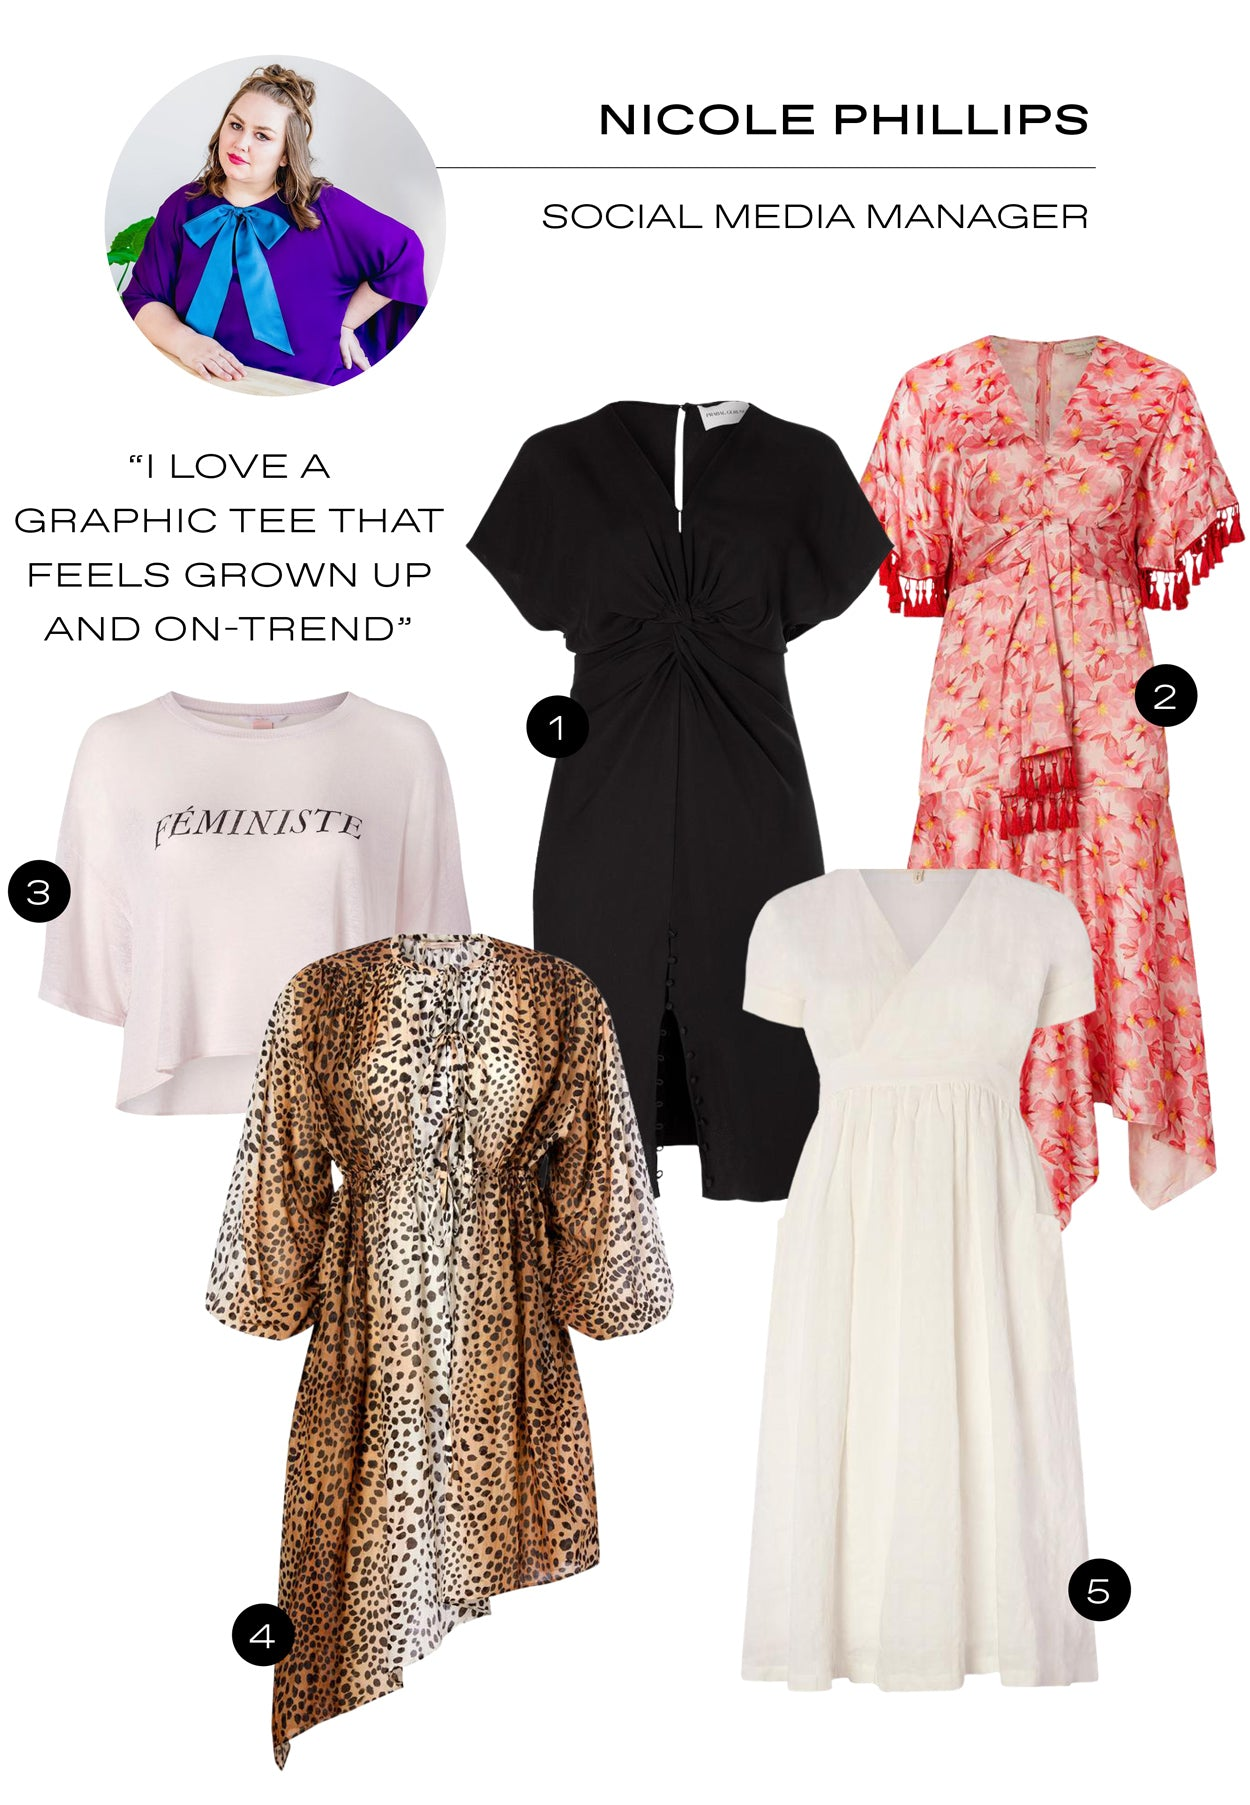 Our Style Expert's Picks